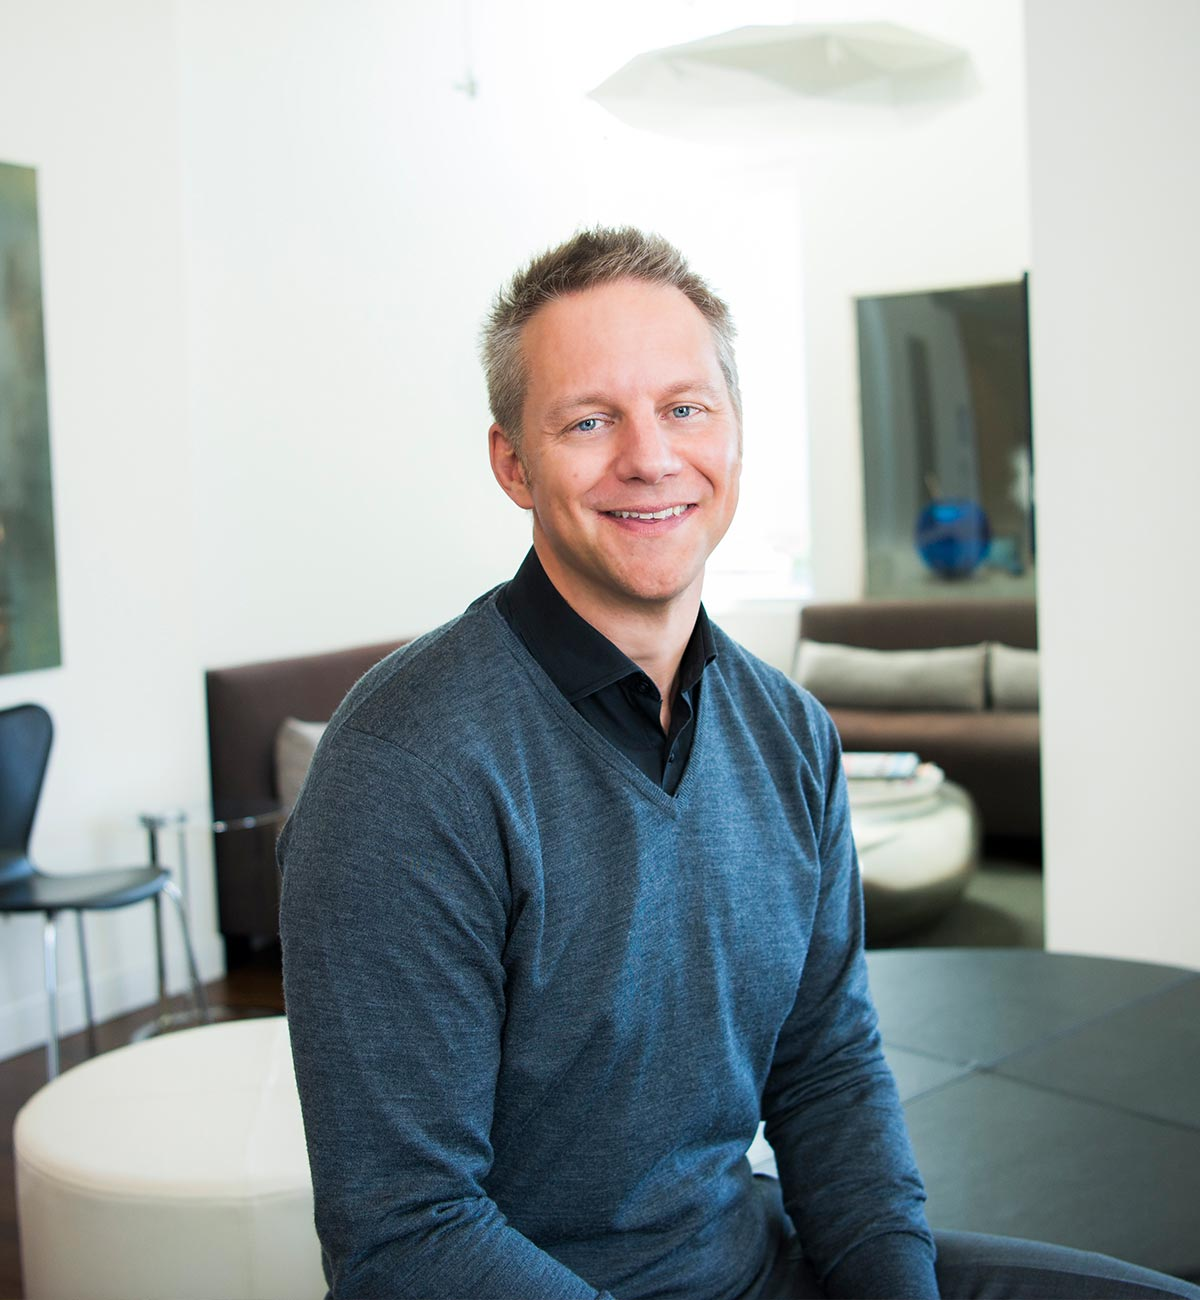 Virtual Healthcare is Here: Wello CEO, Vince Danielsen on 'What She Said!'